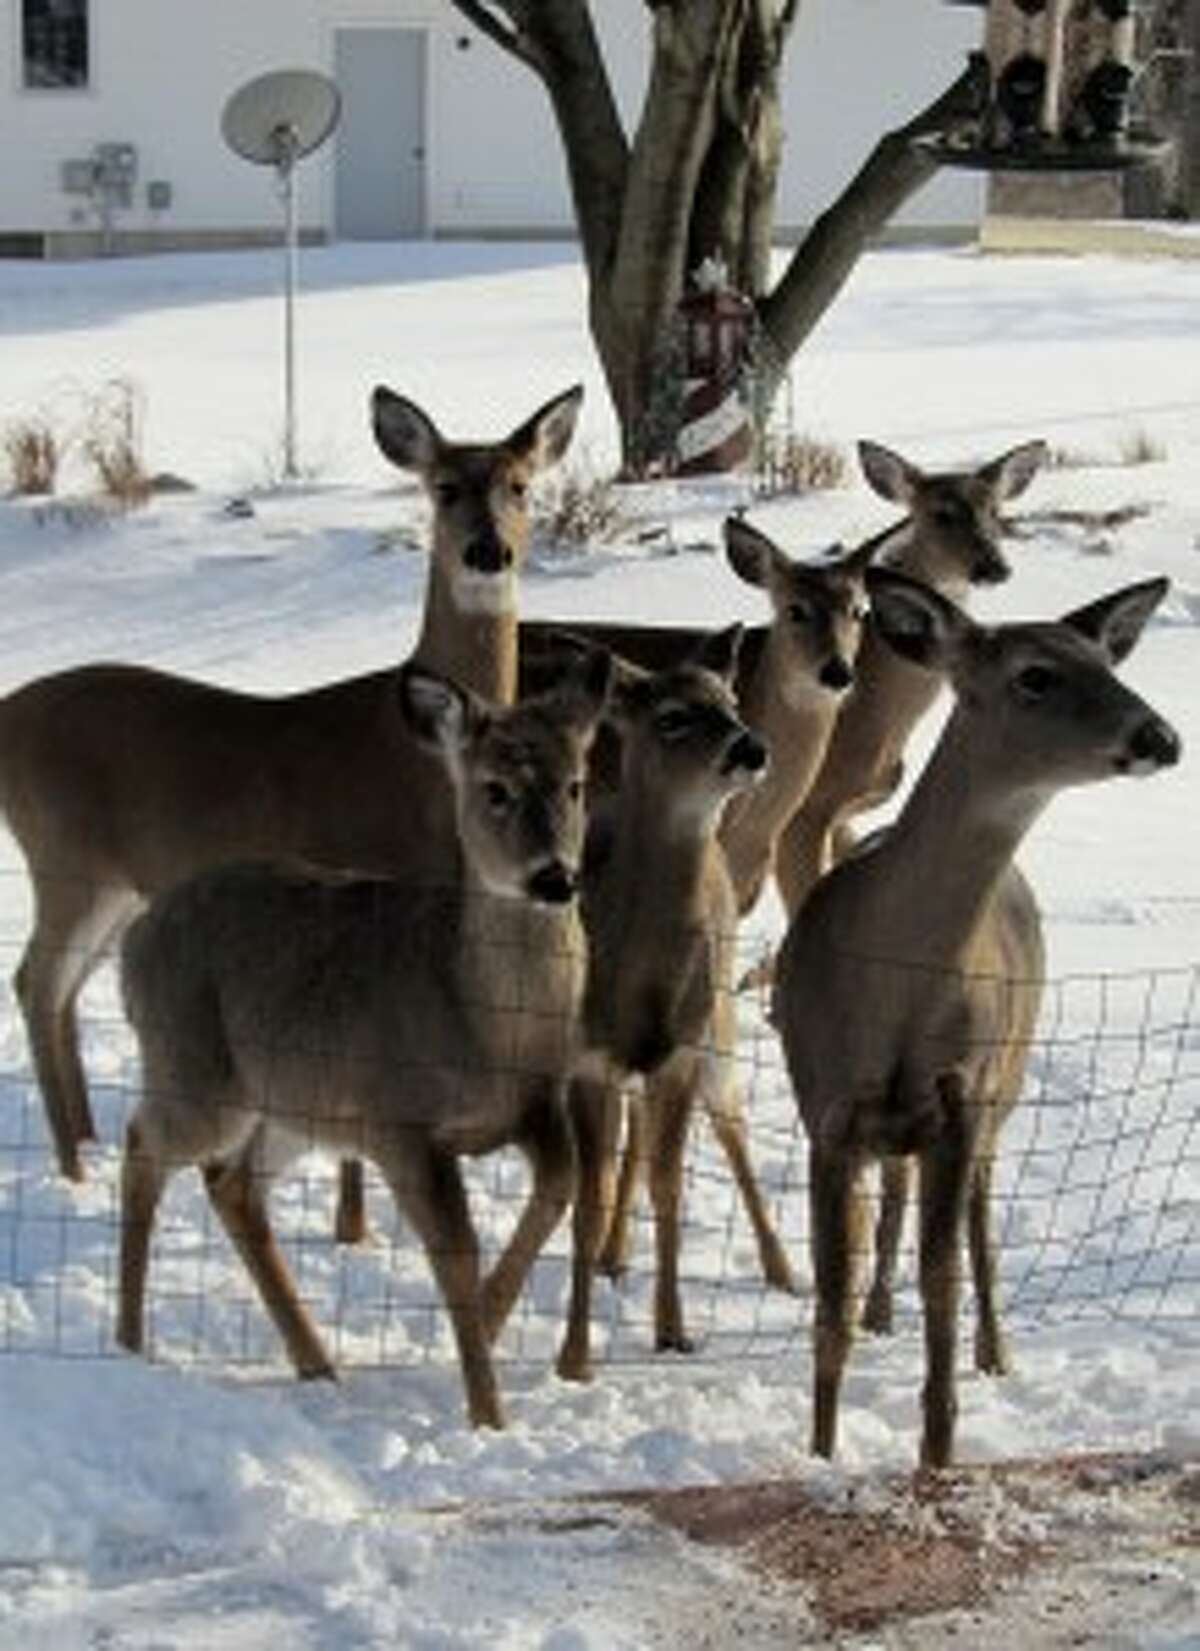 File Photo / News AdvocateA group of six deer roam in the backyard of Bethel Assante's home on Ninth Street in Manistee in March 2014. The Manistee City Council Tuesday rescinded the deer cull by the City of Manistee police department by a vote of 4 to 3.